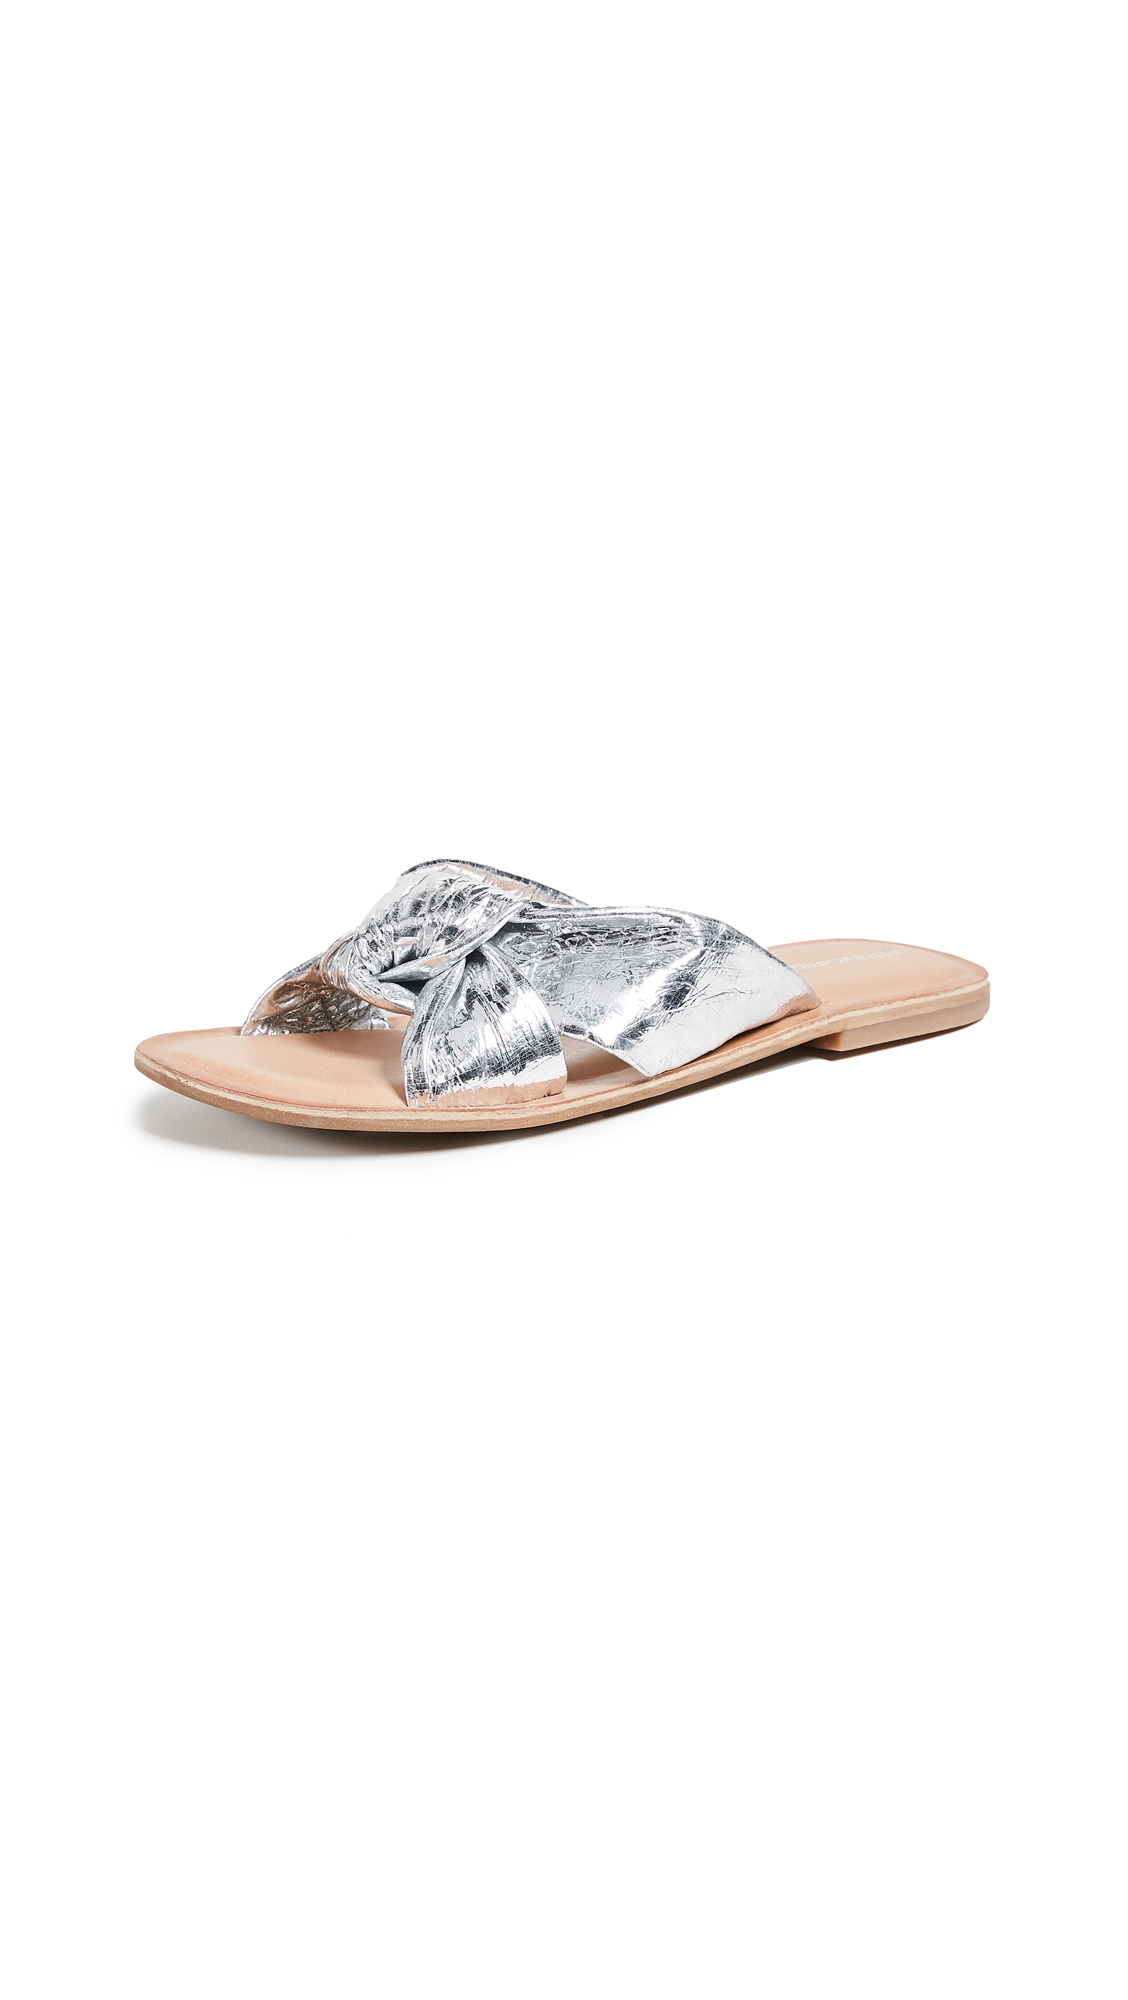 Jeffrey Campbell Zocalo Metallic Slides - Silver